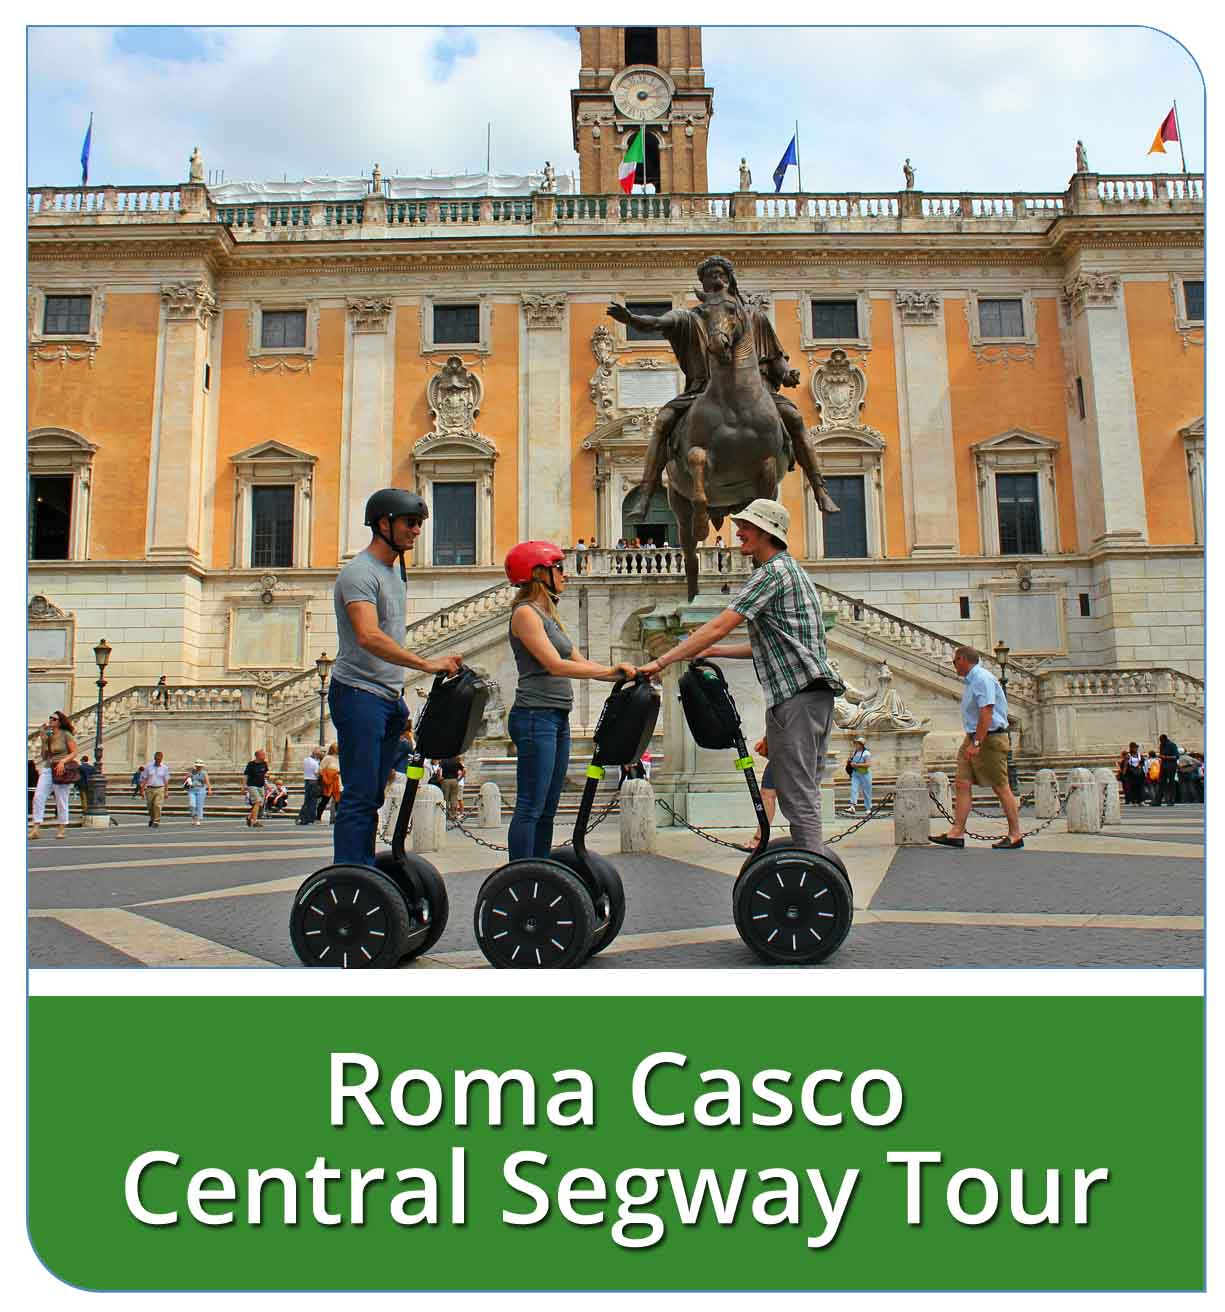 Roma Casco Central Segway Tour